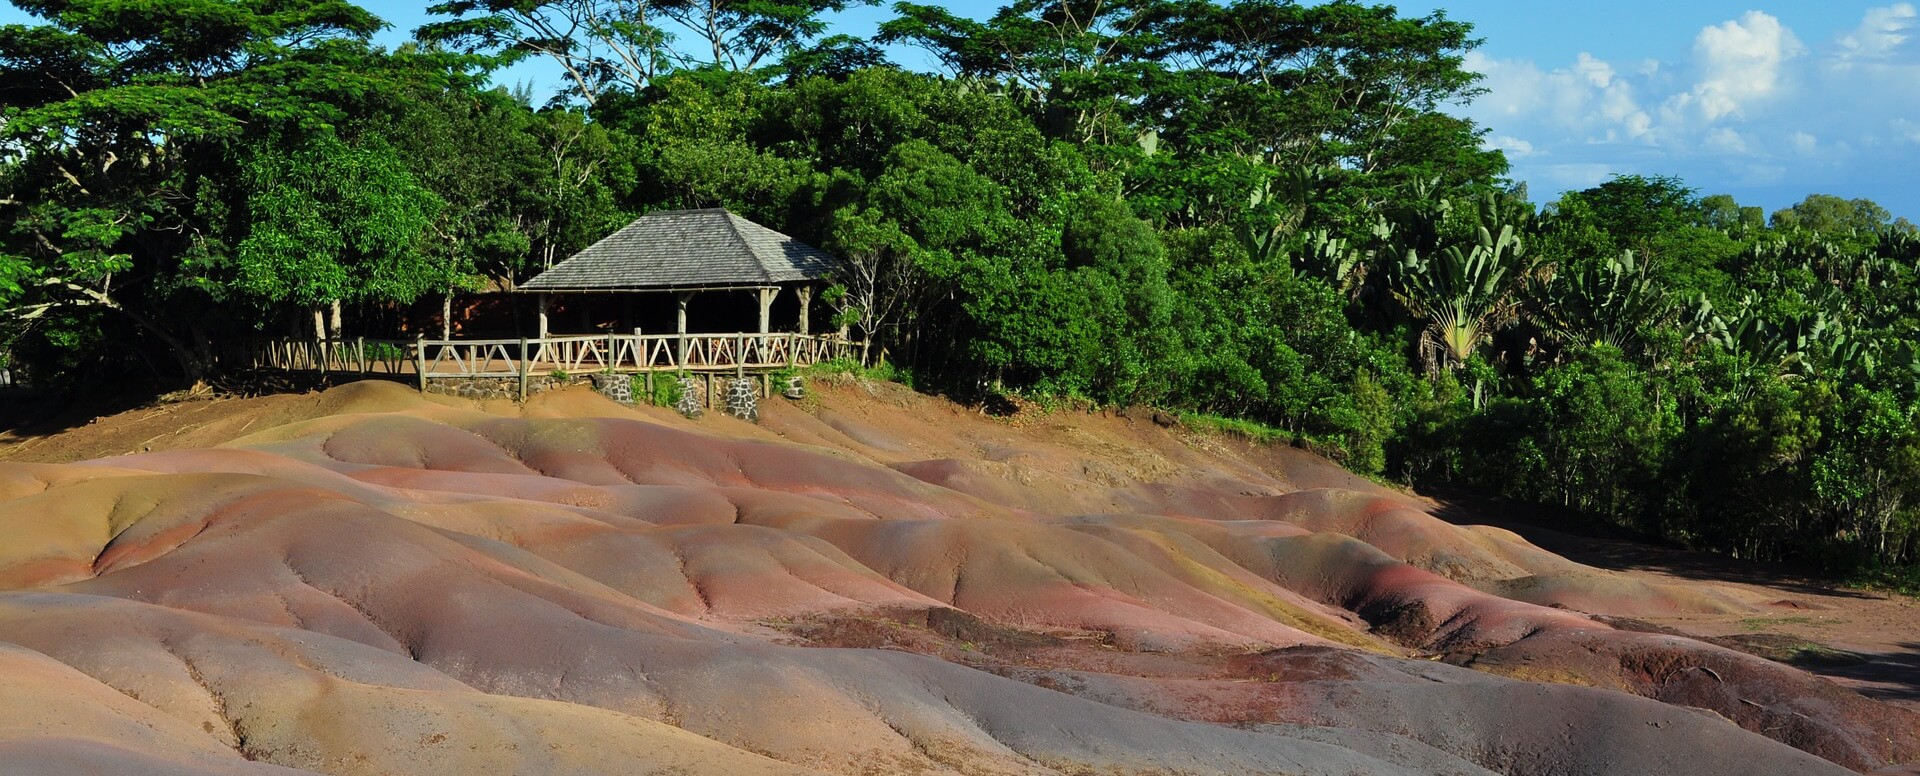 6. Discover the Coloured Earths of Chamarel - Mauritius